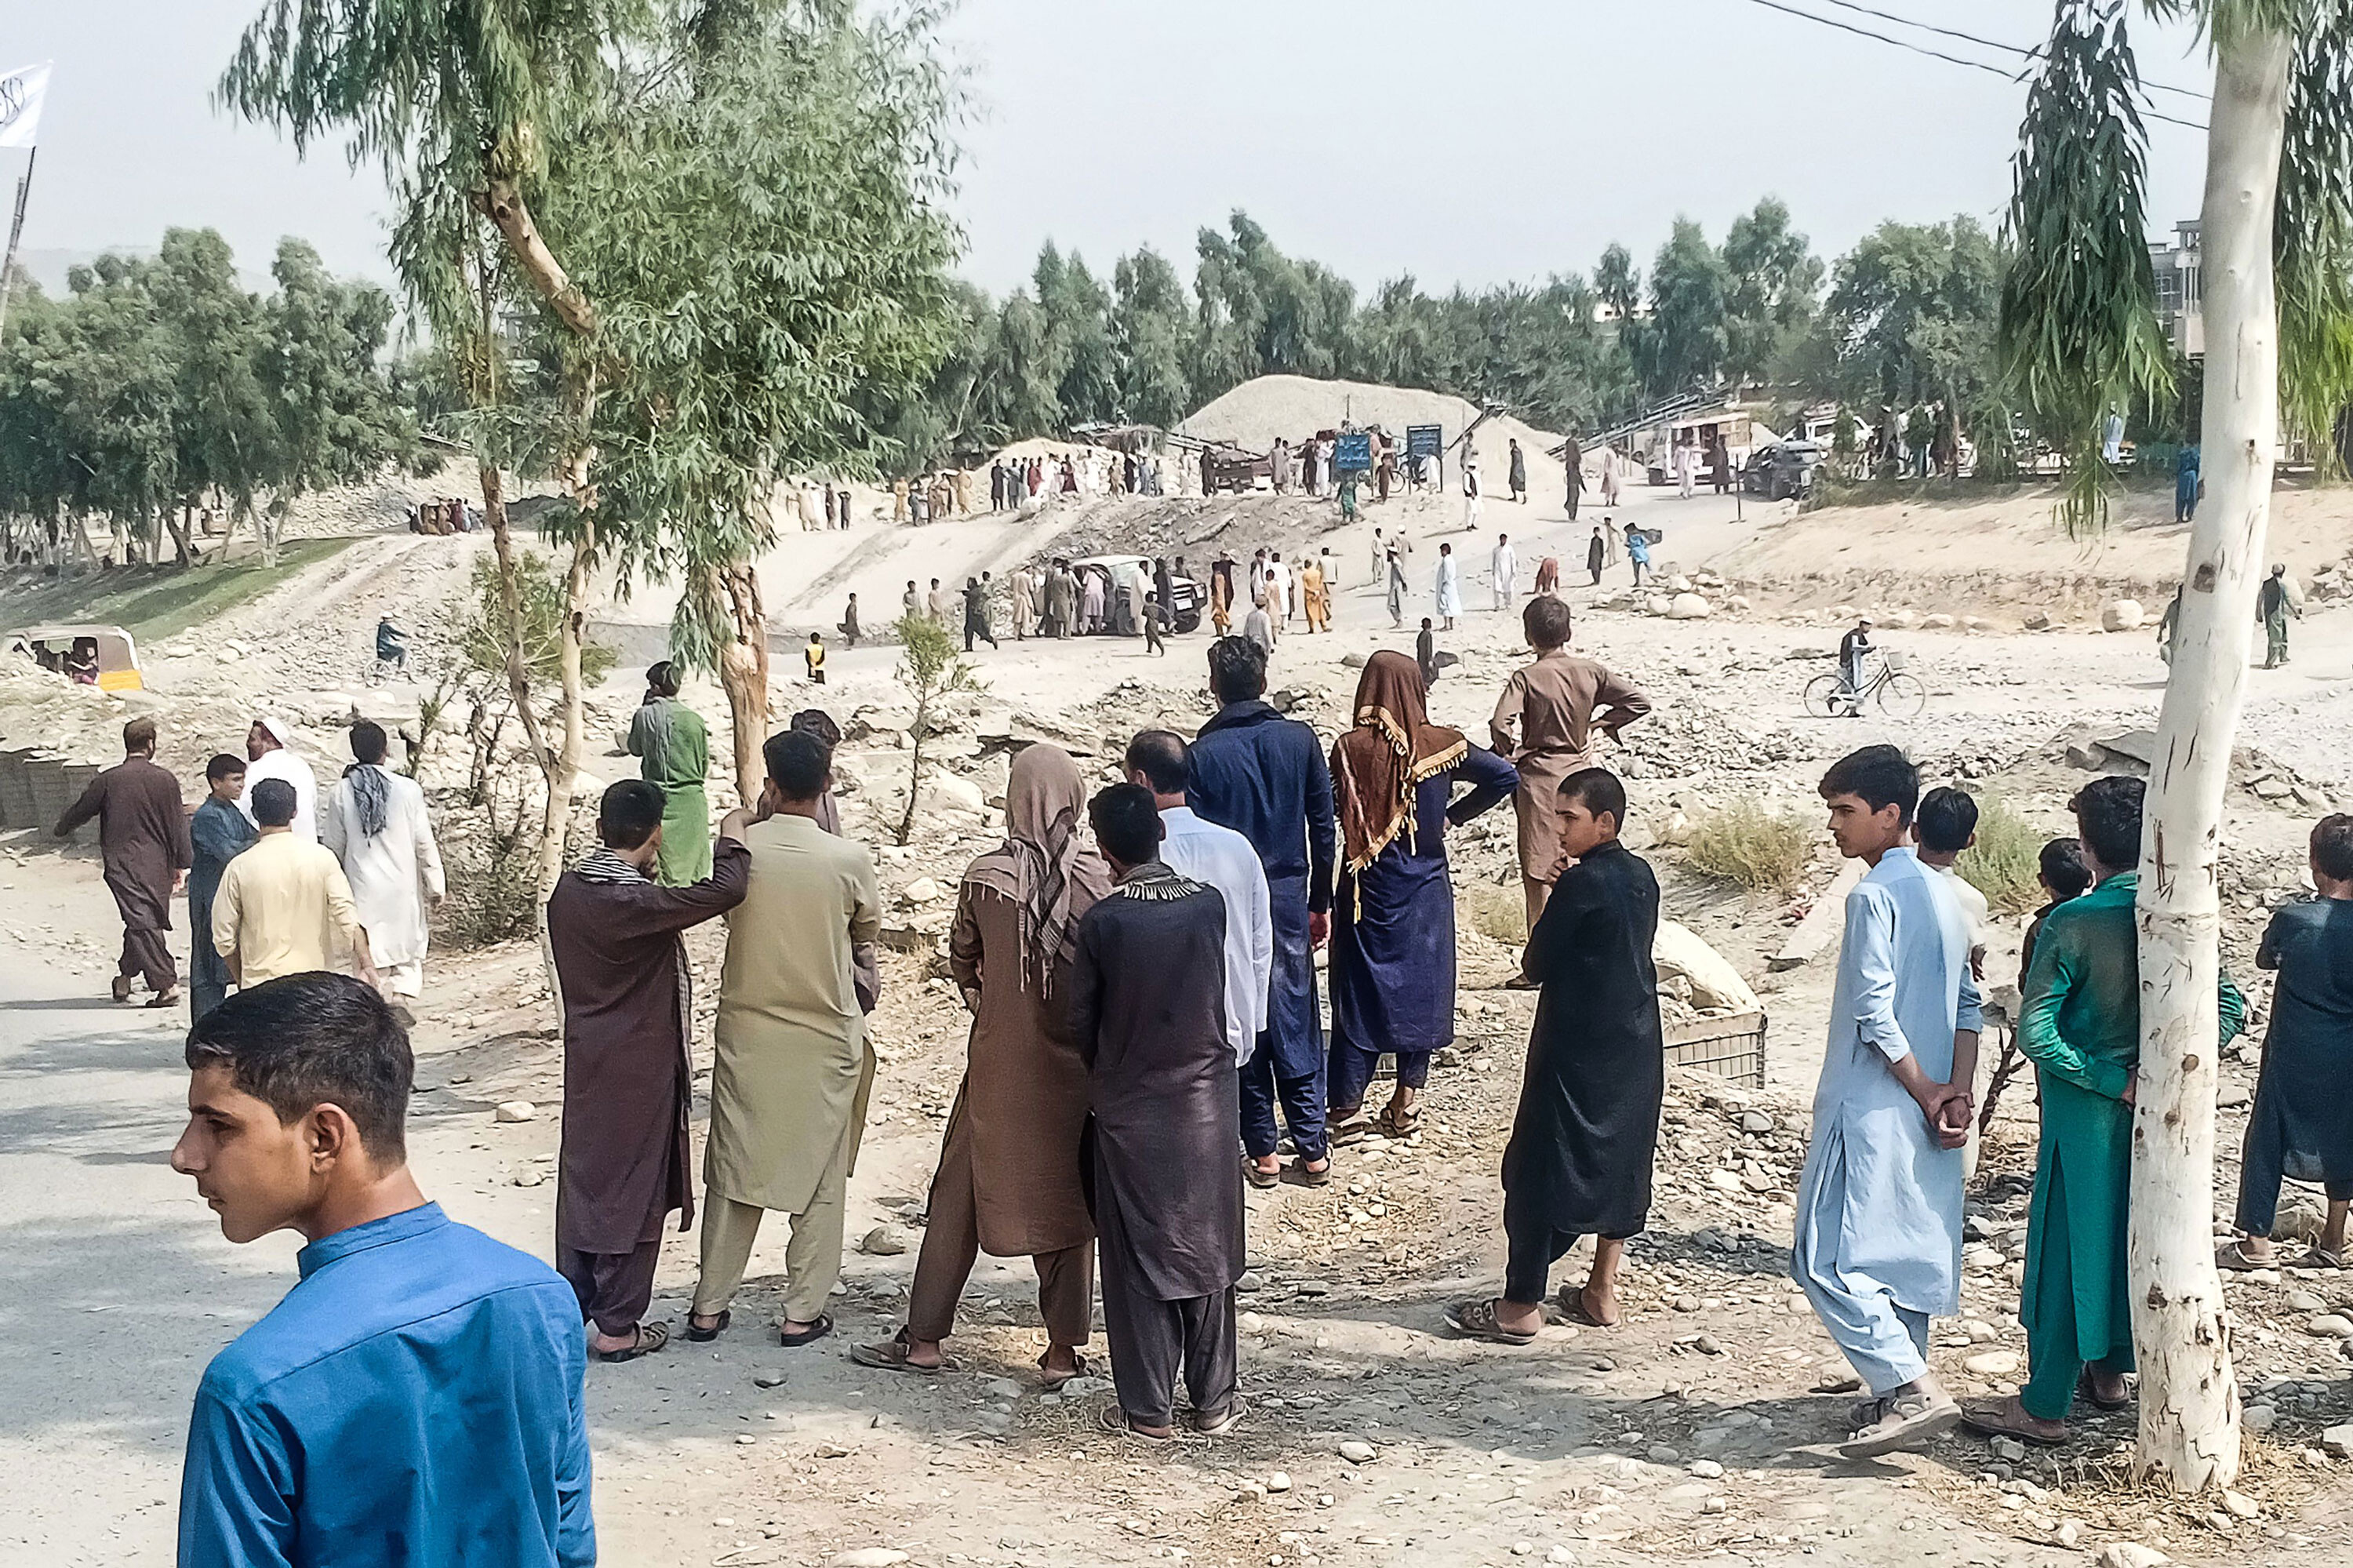 ISIS affiliate claims spate of attacks on Taliban in Afghan city of Jalalabad